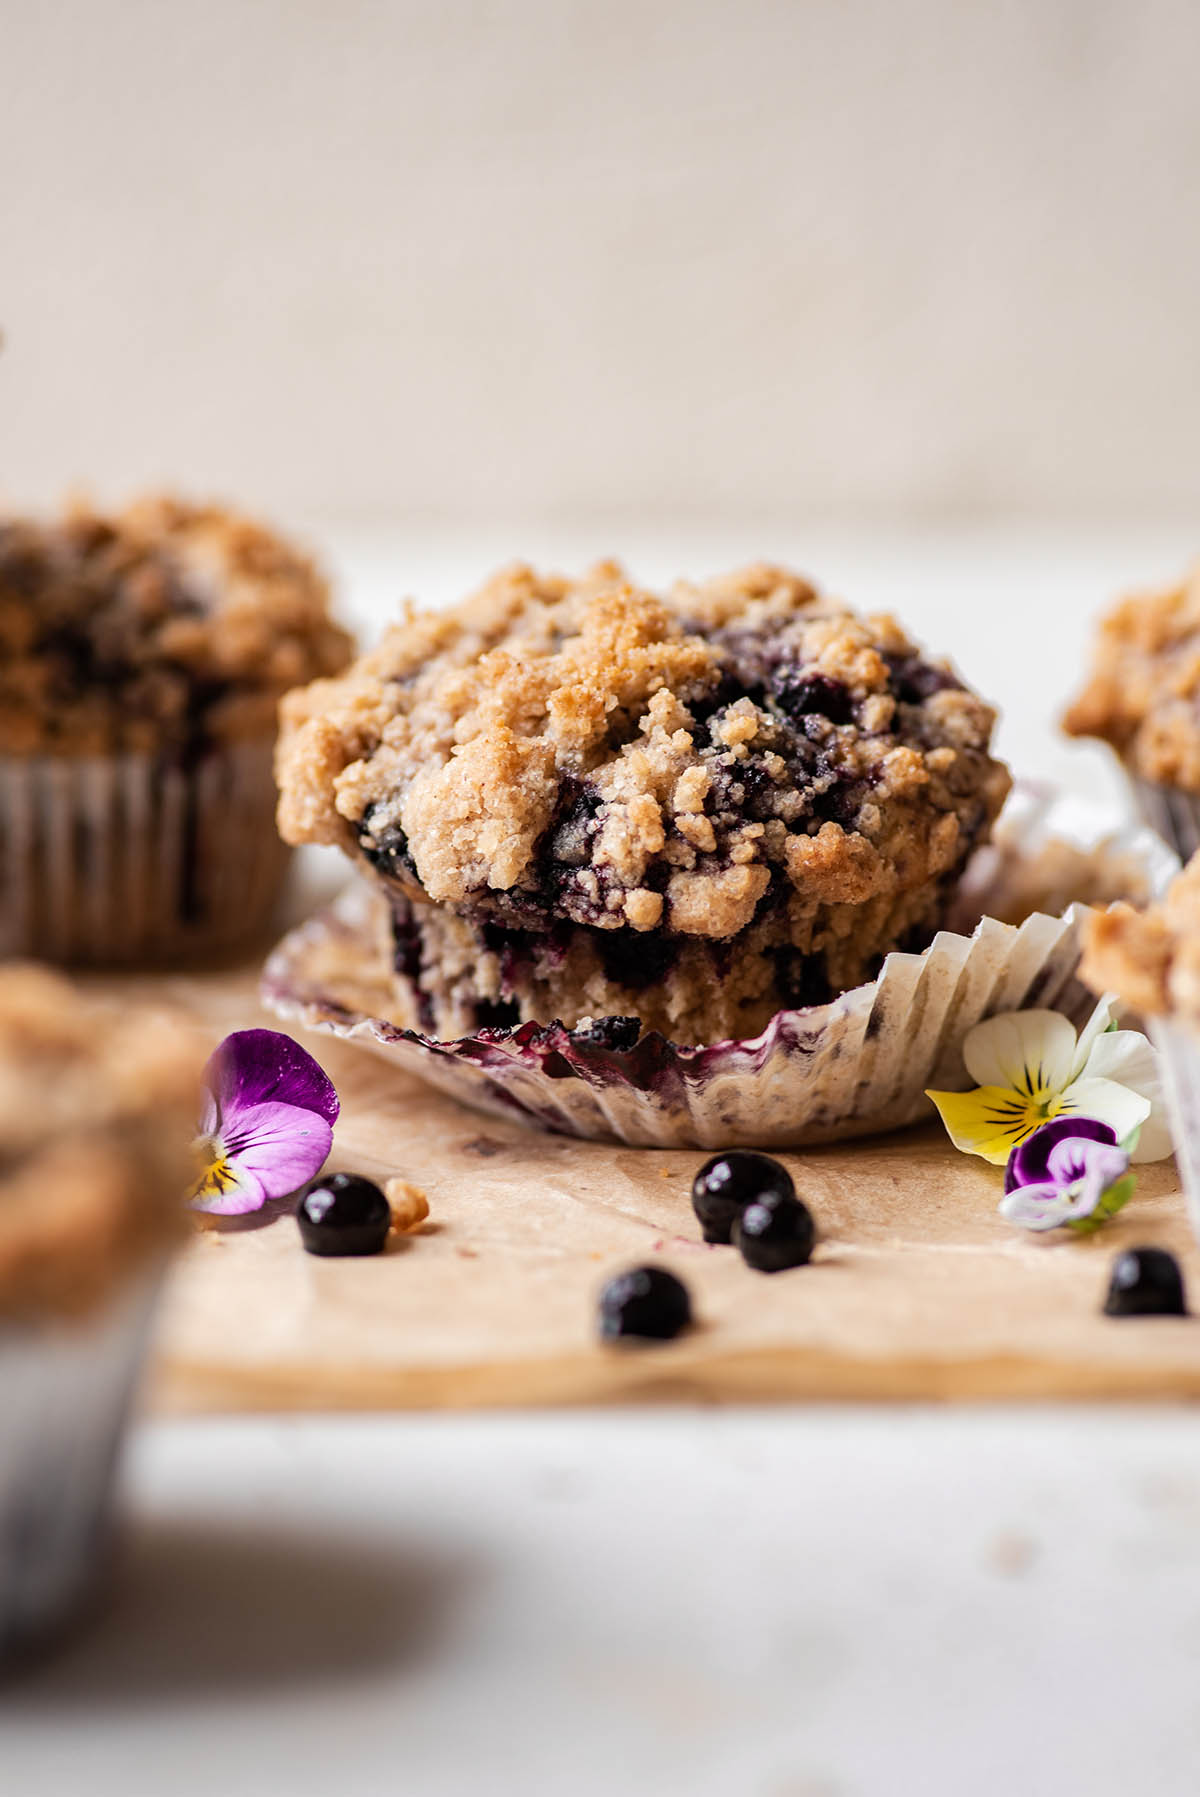 Sourdough Blueberry Muffins from baked the blog